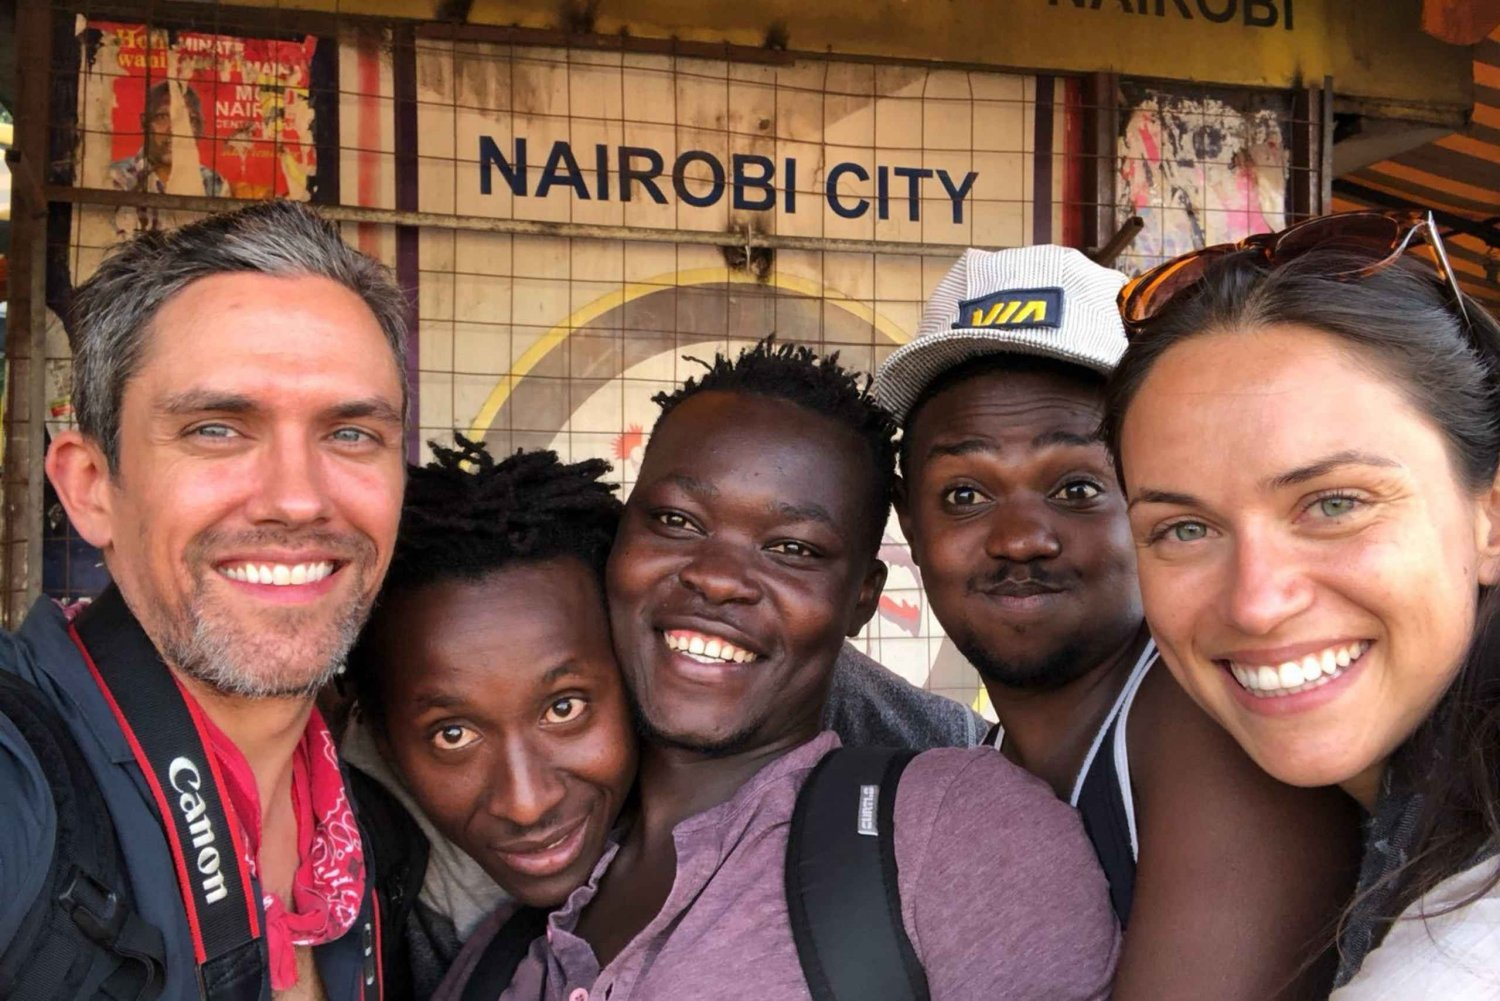 Nairobi Storytelling Tour with Former Street Kids